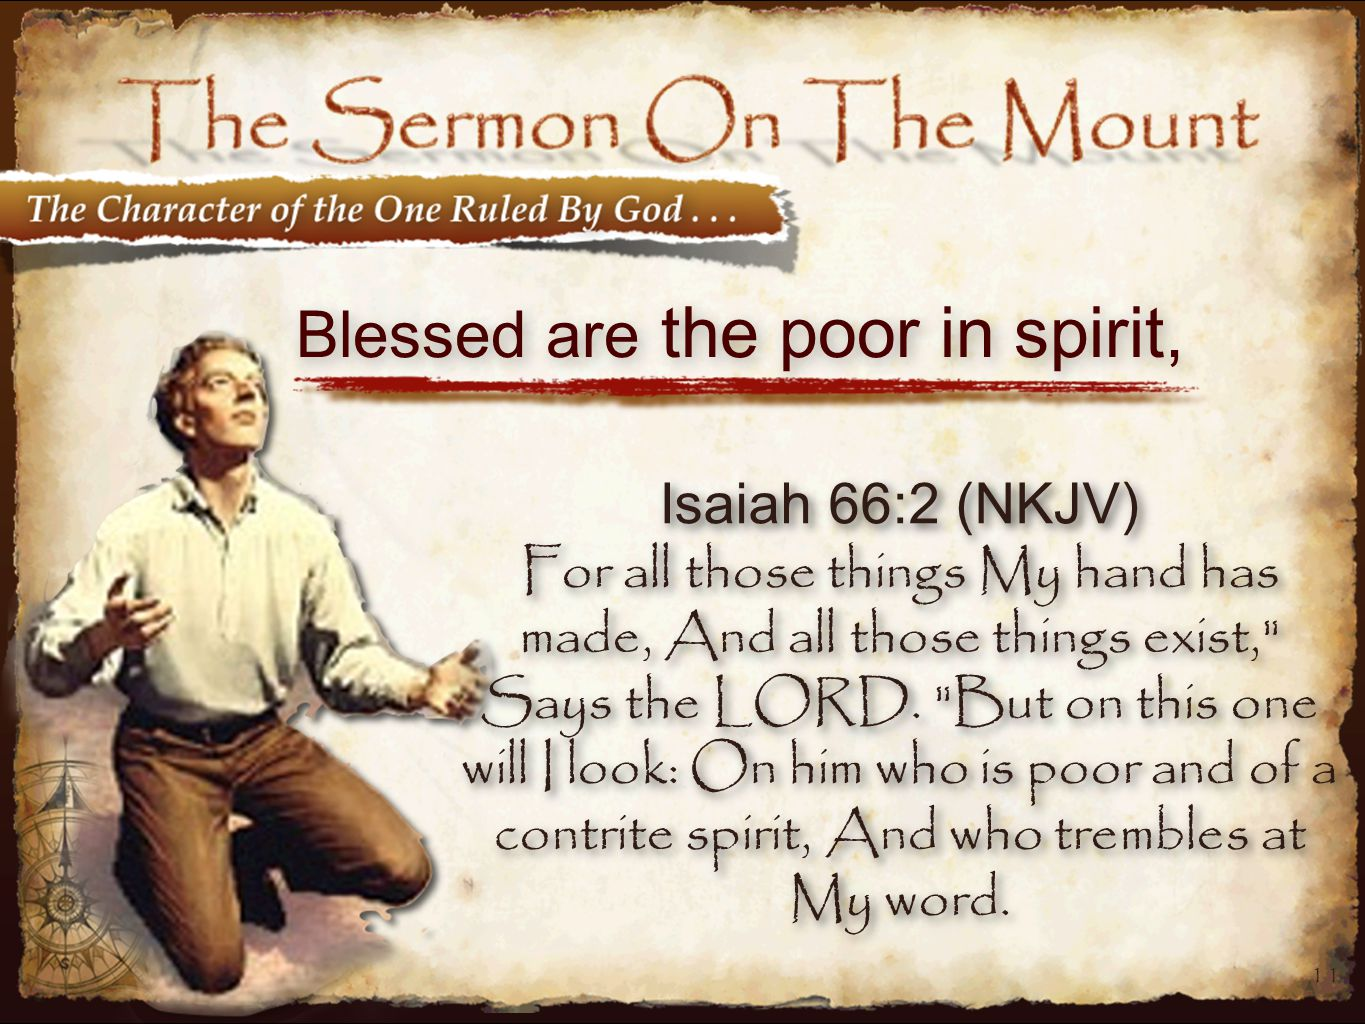 11 Blessed are the poor in spirit, Isaiah 66:2 (NKJV) For all those things My hand has made, And all those things exist, Says the LORD.